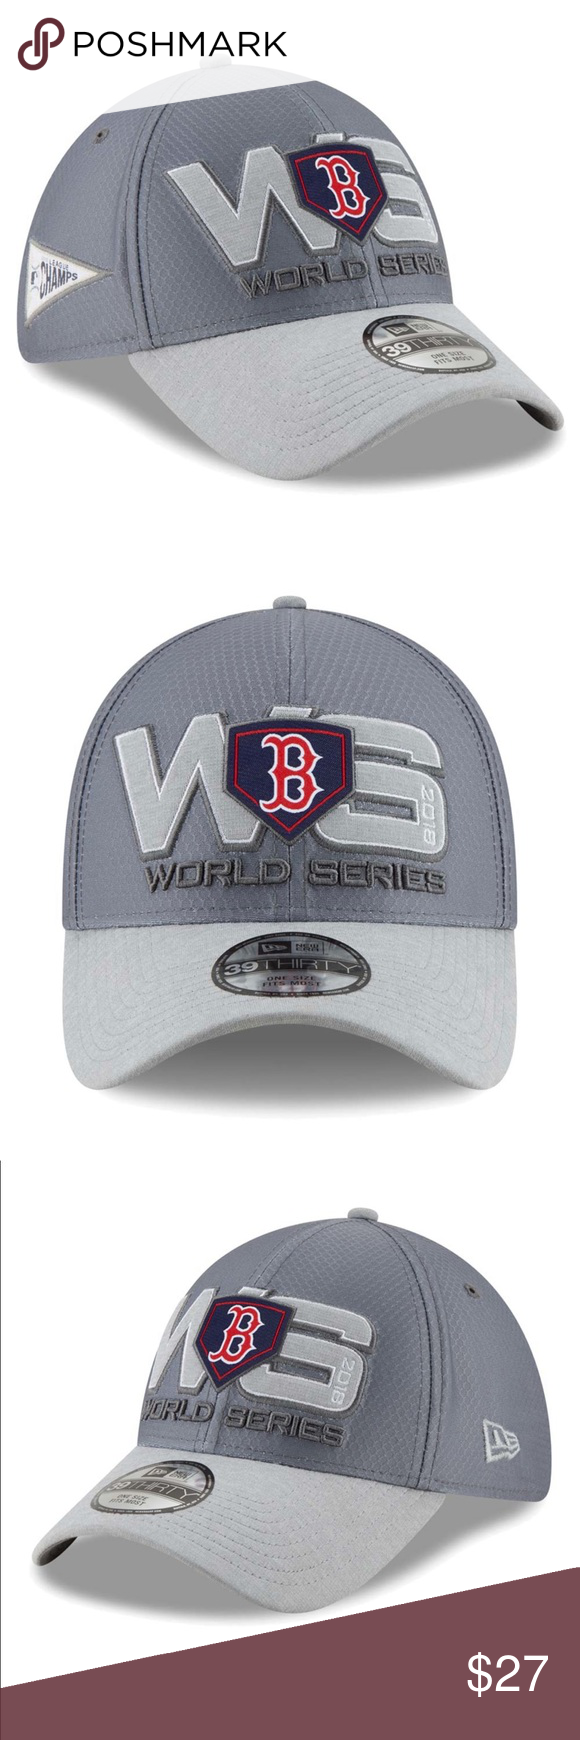 best service a0088 12a2e NEW Red Sox 2018 American League Champions Hat Grab this 2018 American  League Champions Locker Room 39THIRTY Flex Hat from New Era for the Red Sox  fan in ...